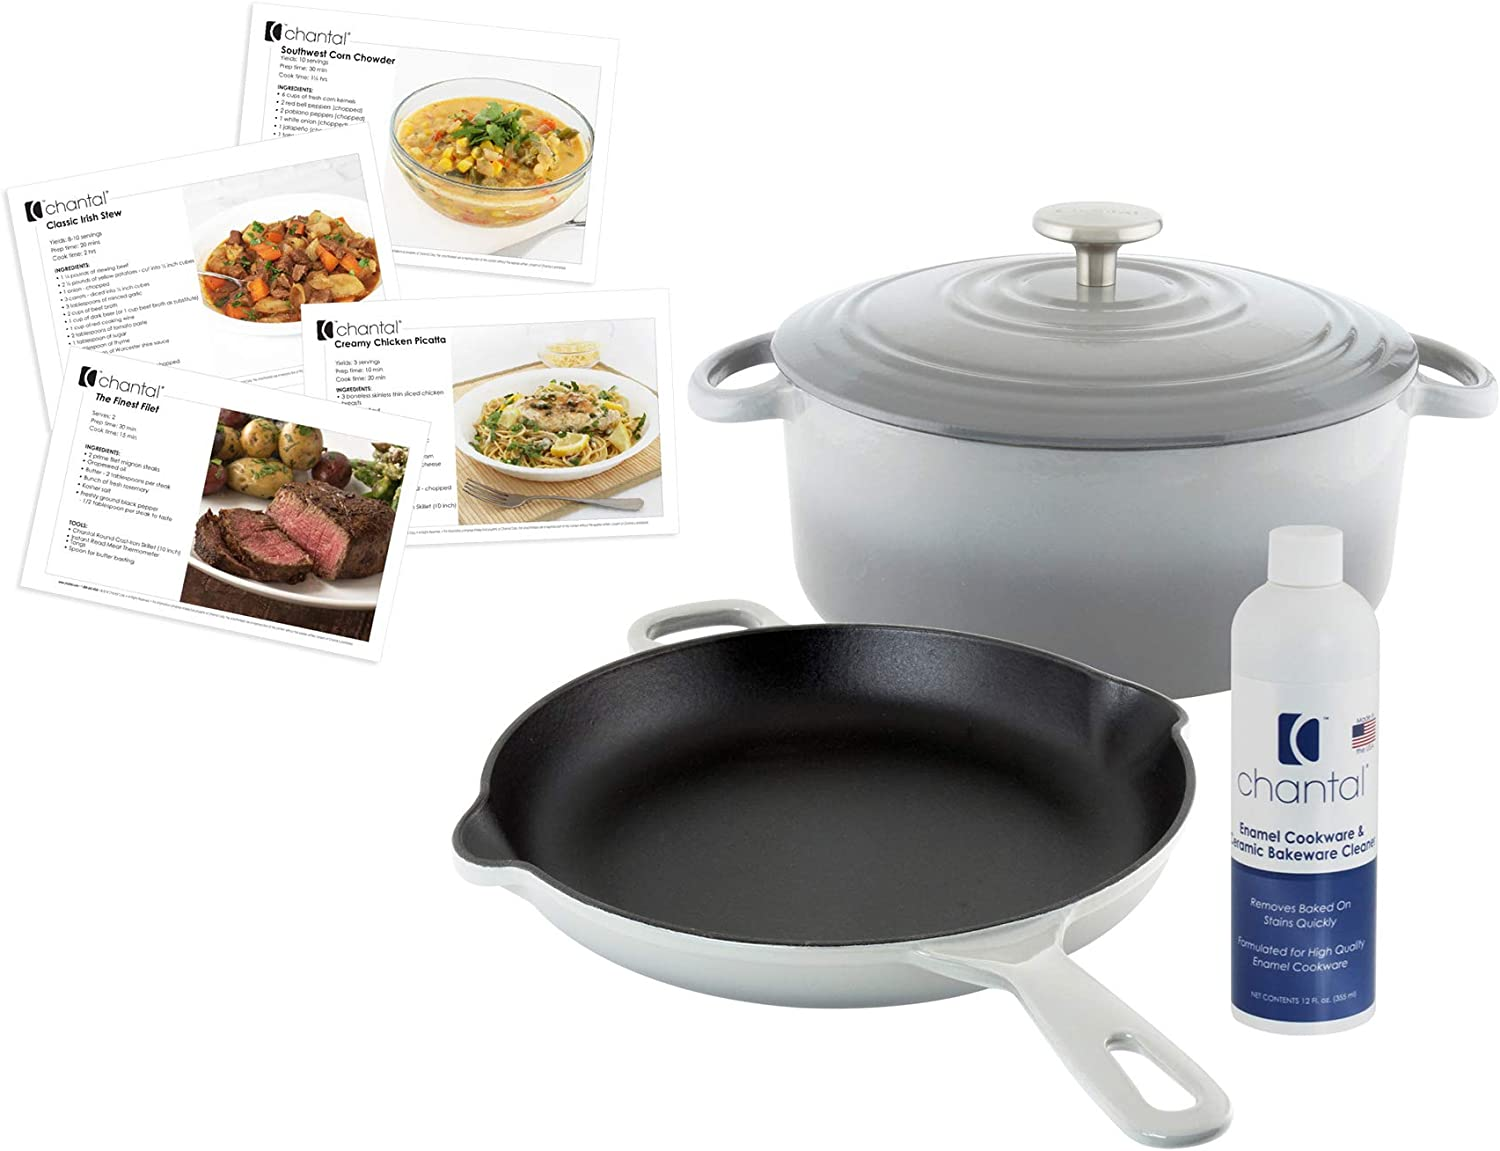 """Chantal Enameled Heavy Duty Cast-Iron Set: 5-Quart Round Dutch Oven with Lid and 10"""" Cast-Iron Skillet with Ergonomic Iron Handles, Fade Grey, Includes Cleaner and Recipe Cards"""